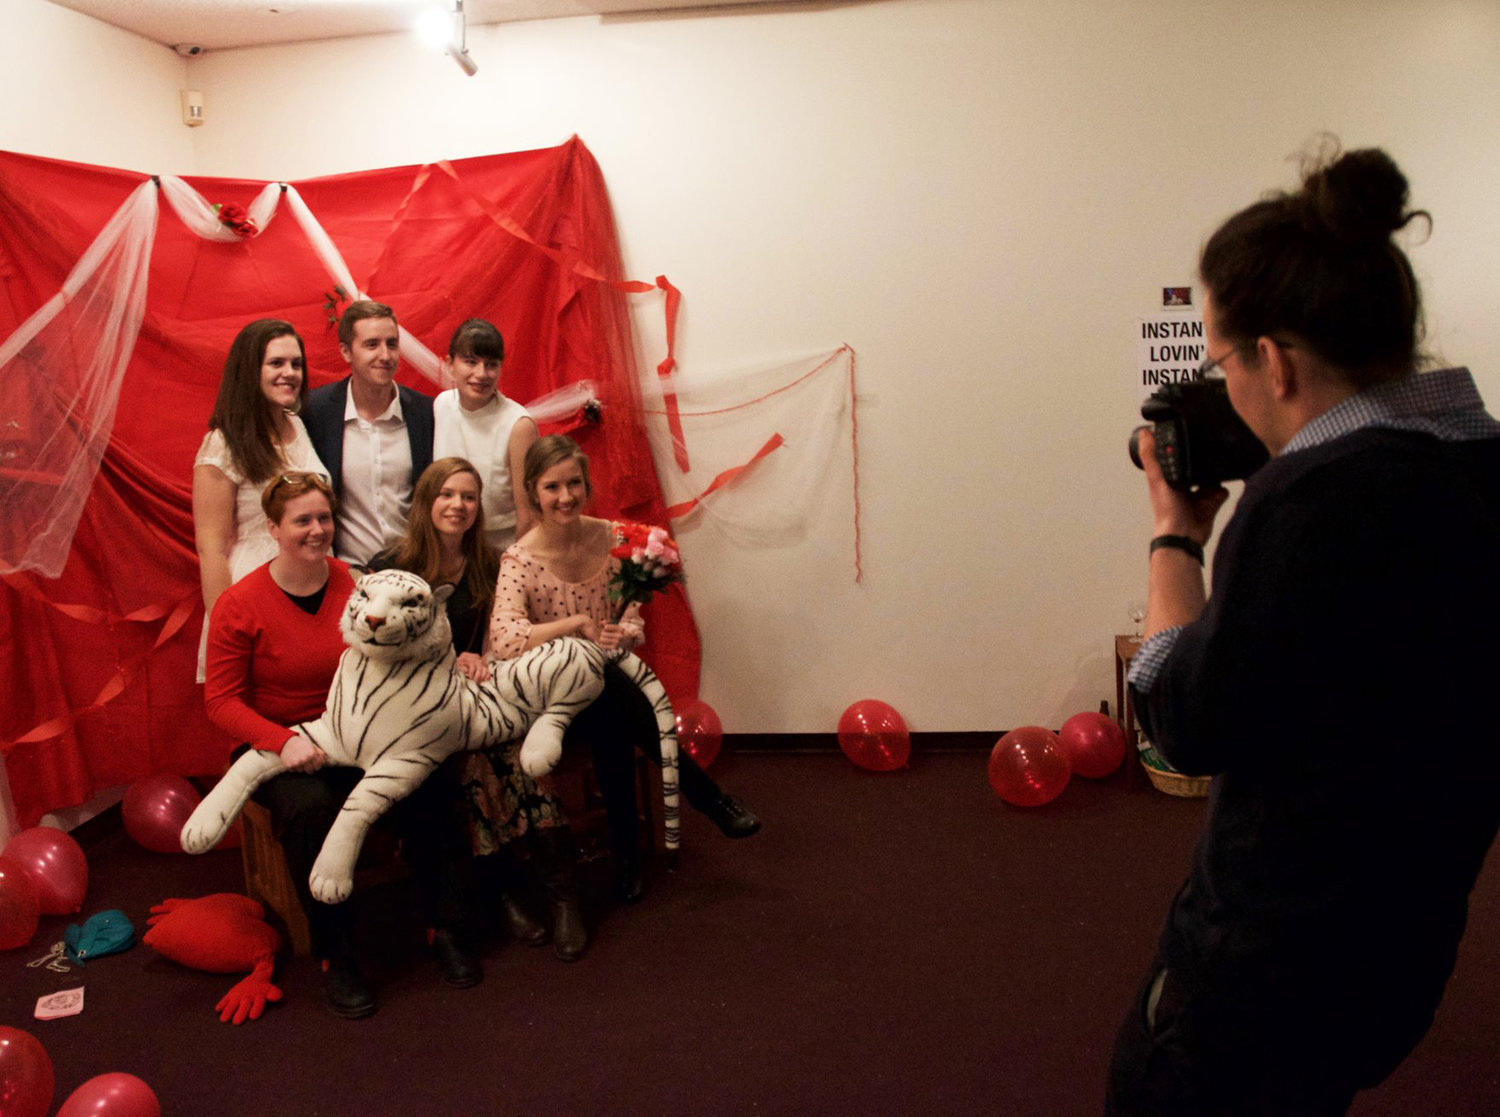 In the lobby of the Owens Art Gallery, a group of smiling adults gather together in front of a backdrop decorated with red fabric, streamers, balloons, and plastic flowers. Three adults stand while three sit in front, holding a large white stuffed tiger. A photographer stands before them, ready to capture their photo using a Polaroid camera.